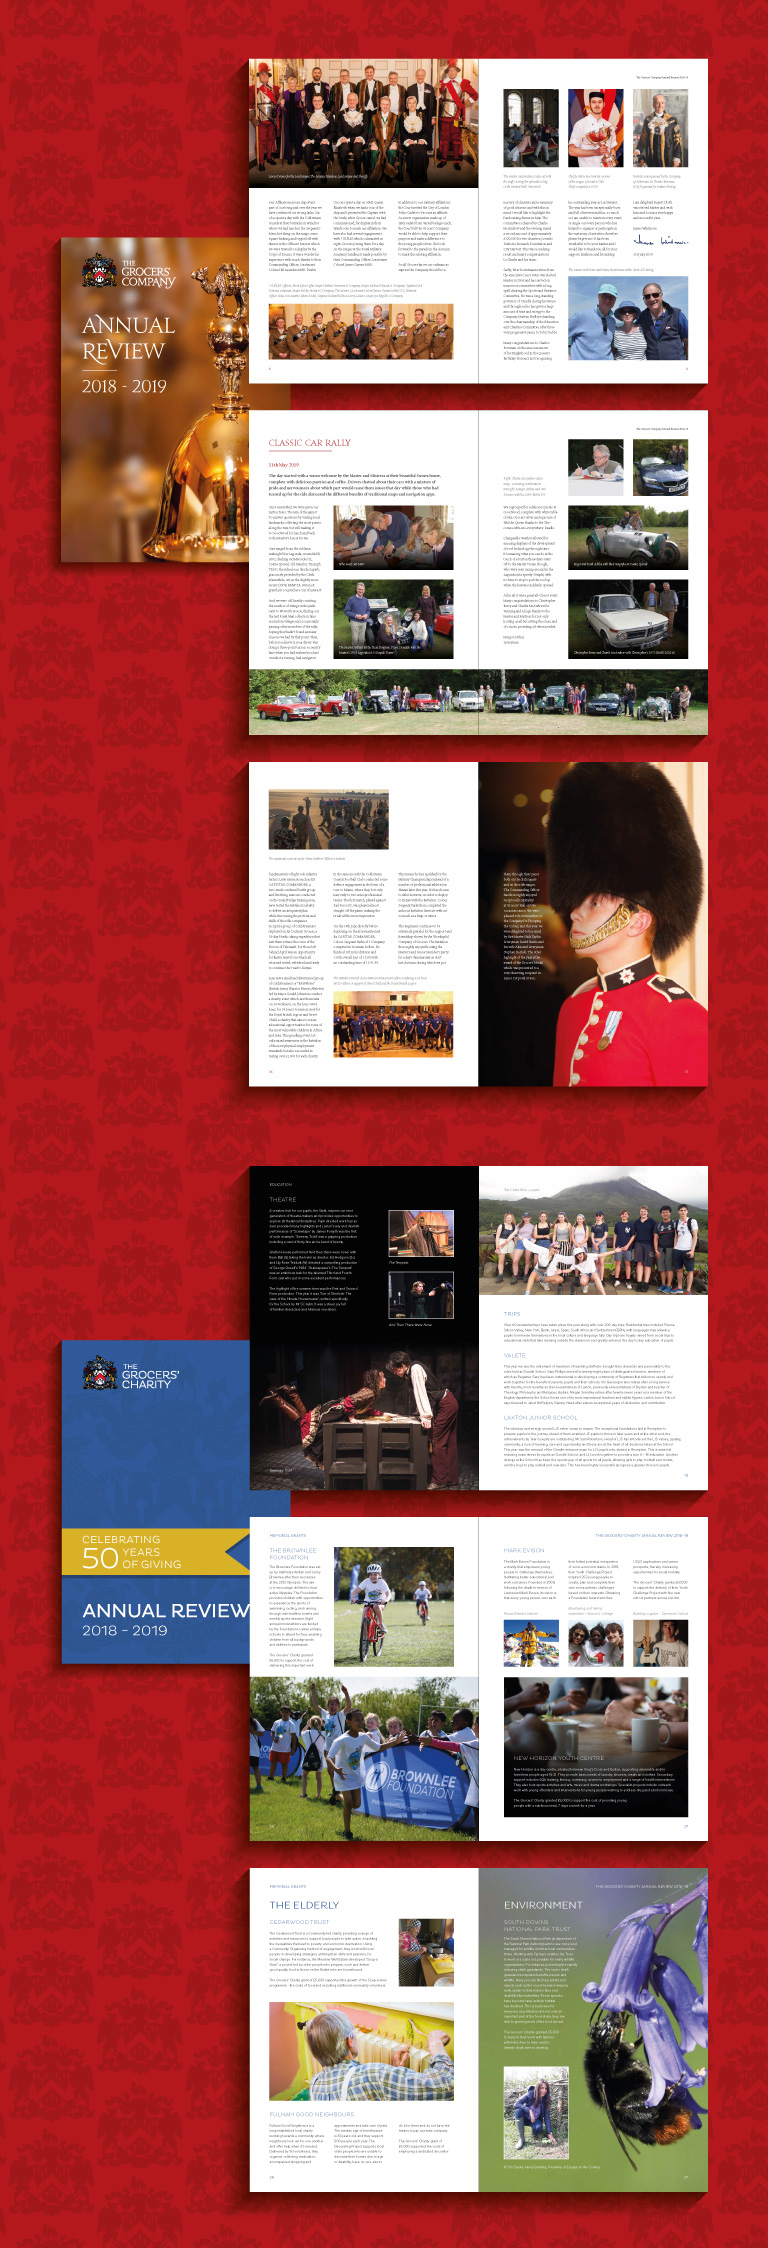 Grocers' Hall Annual Review - mobile